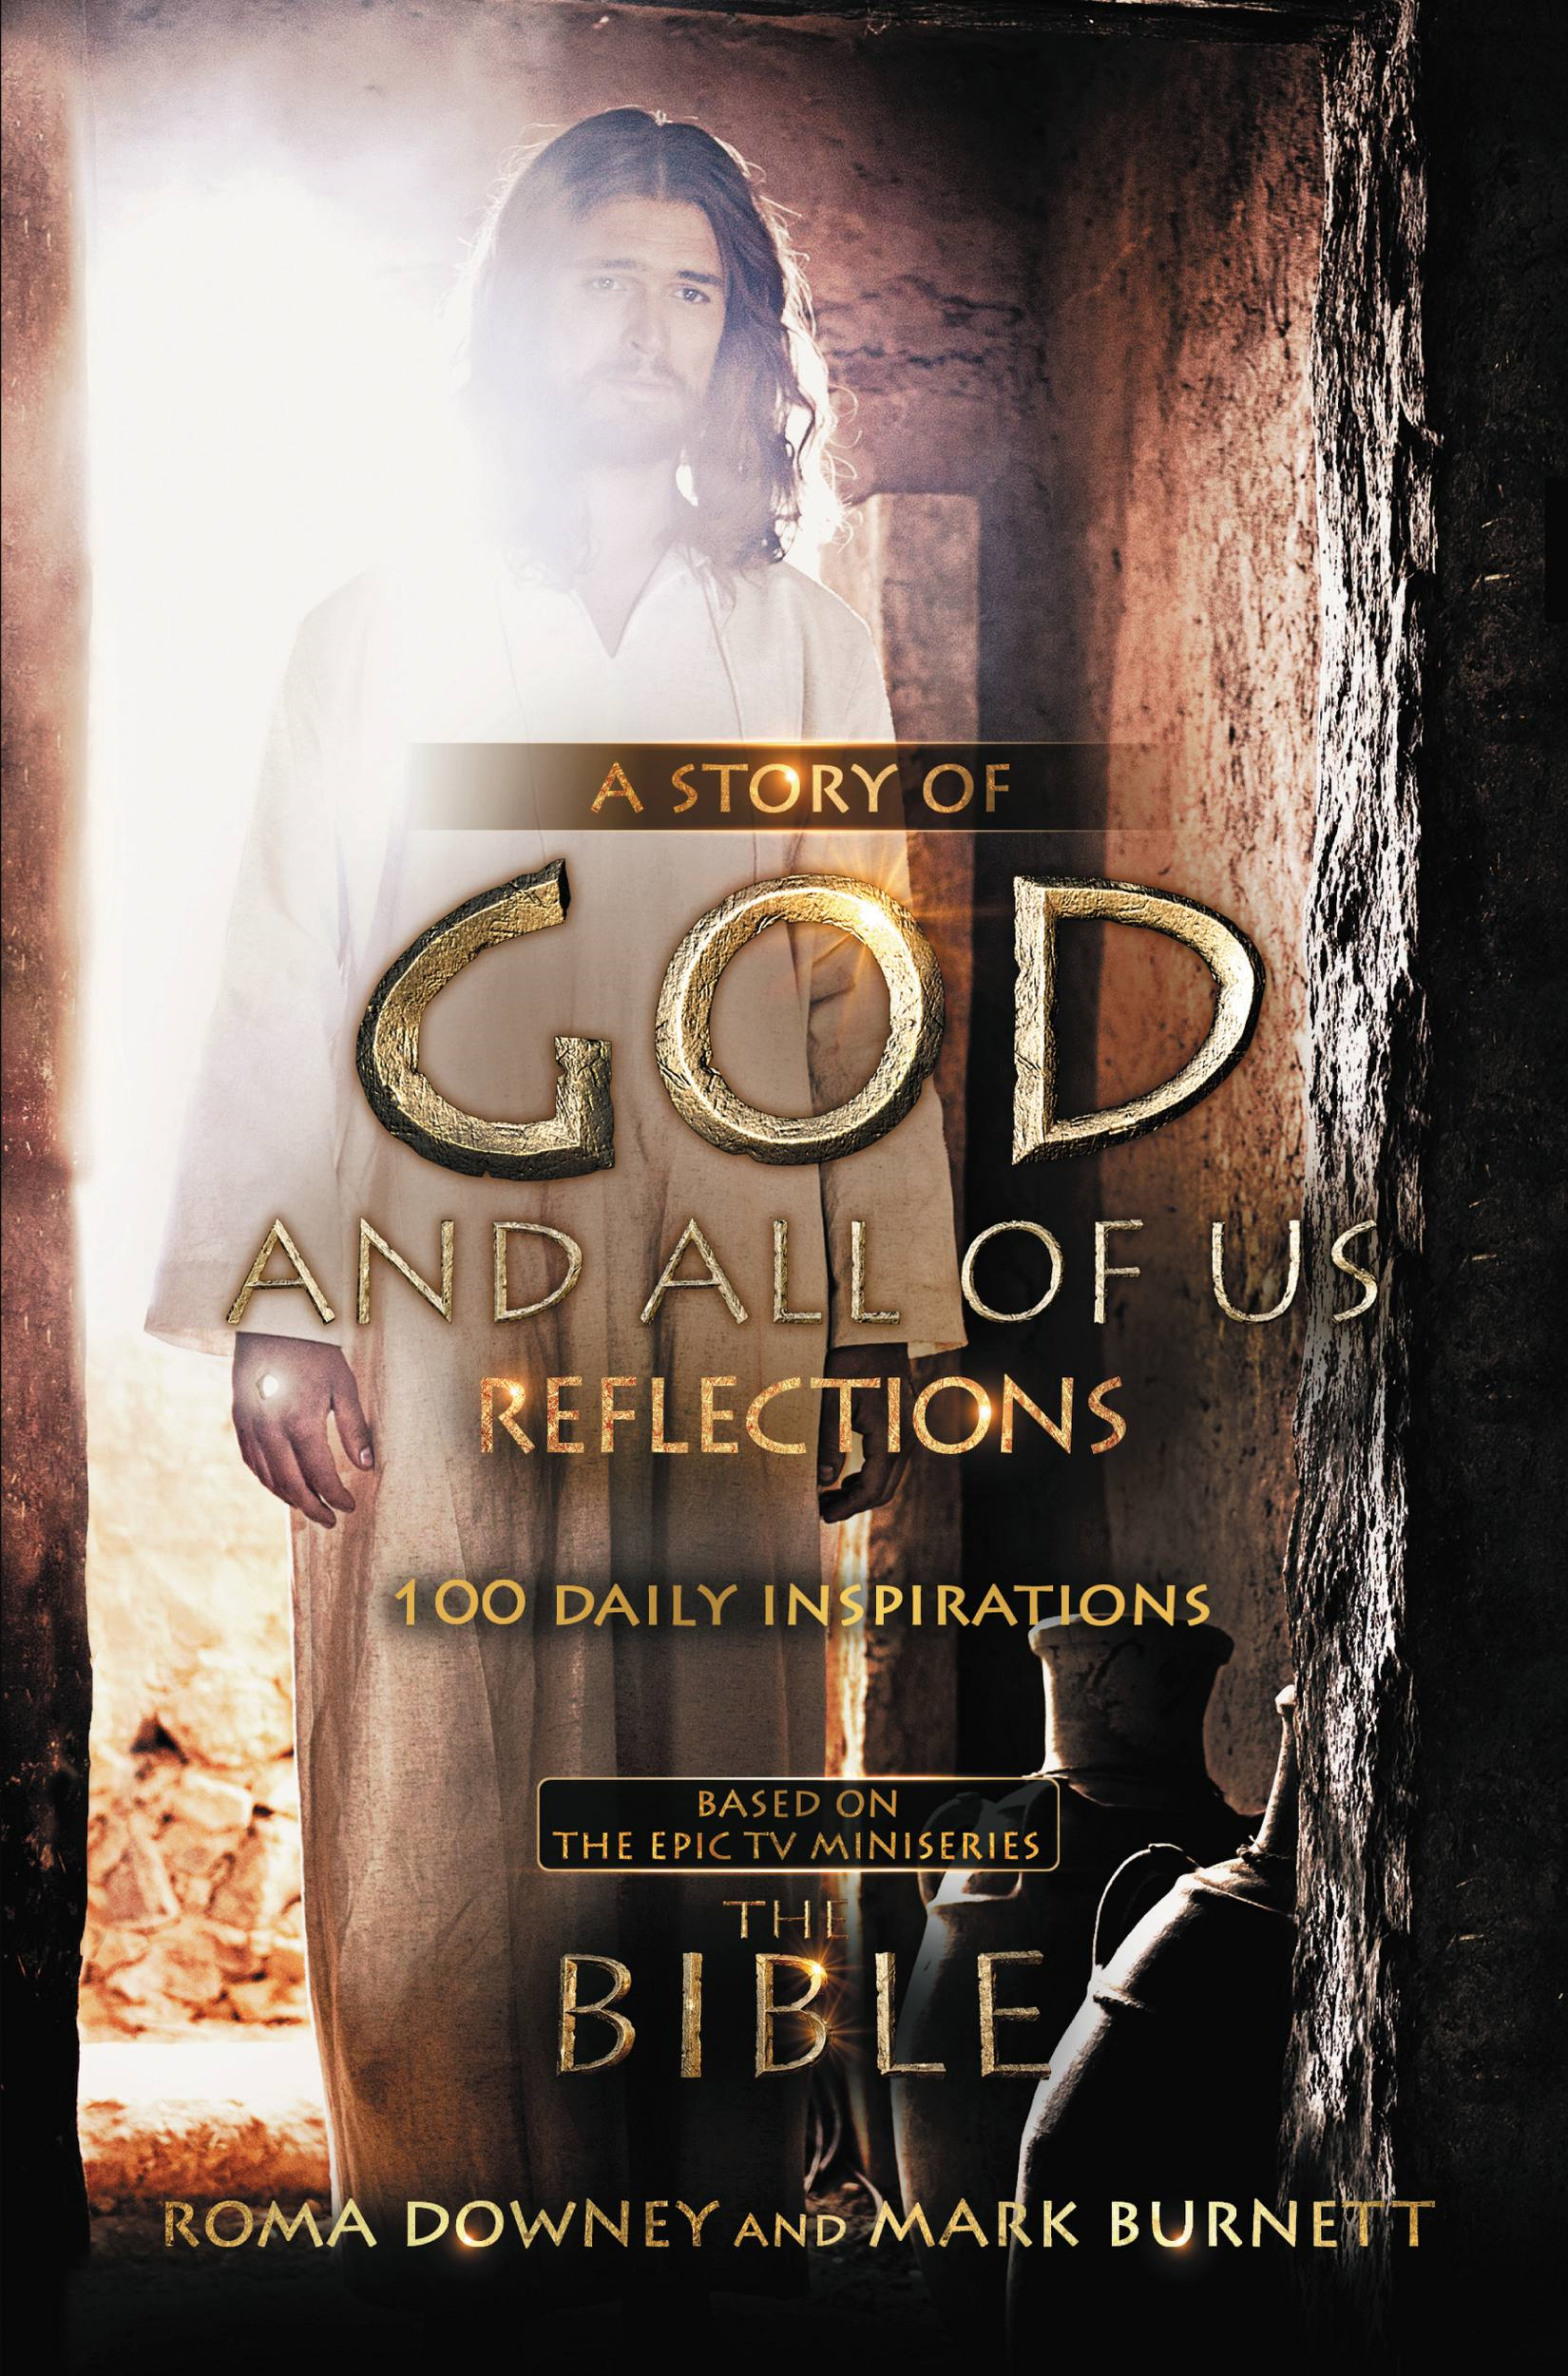 A Story of God and All of Us Reflections